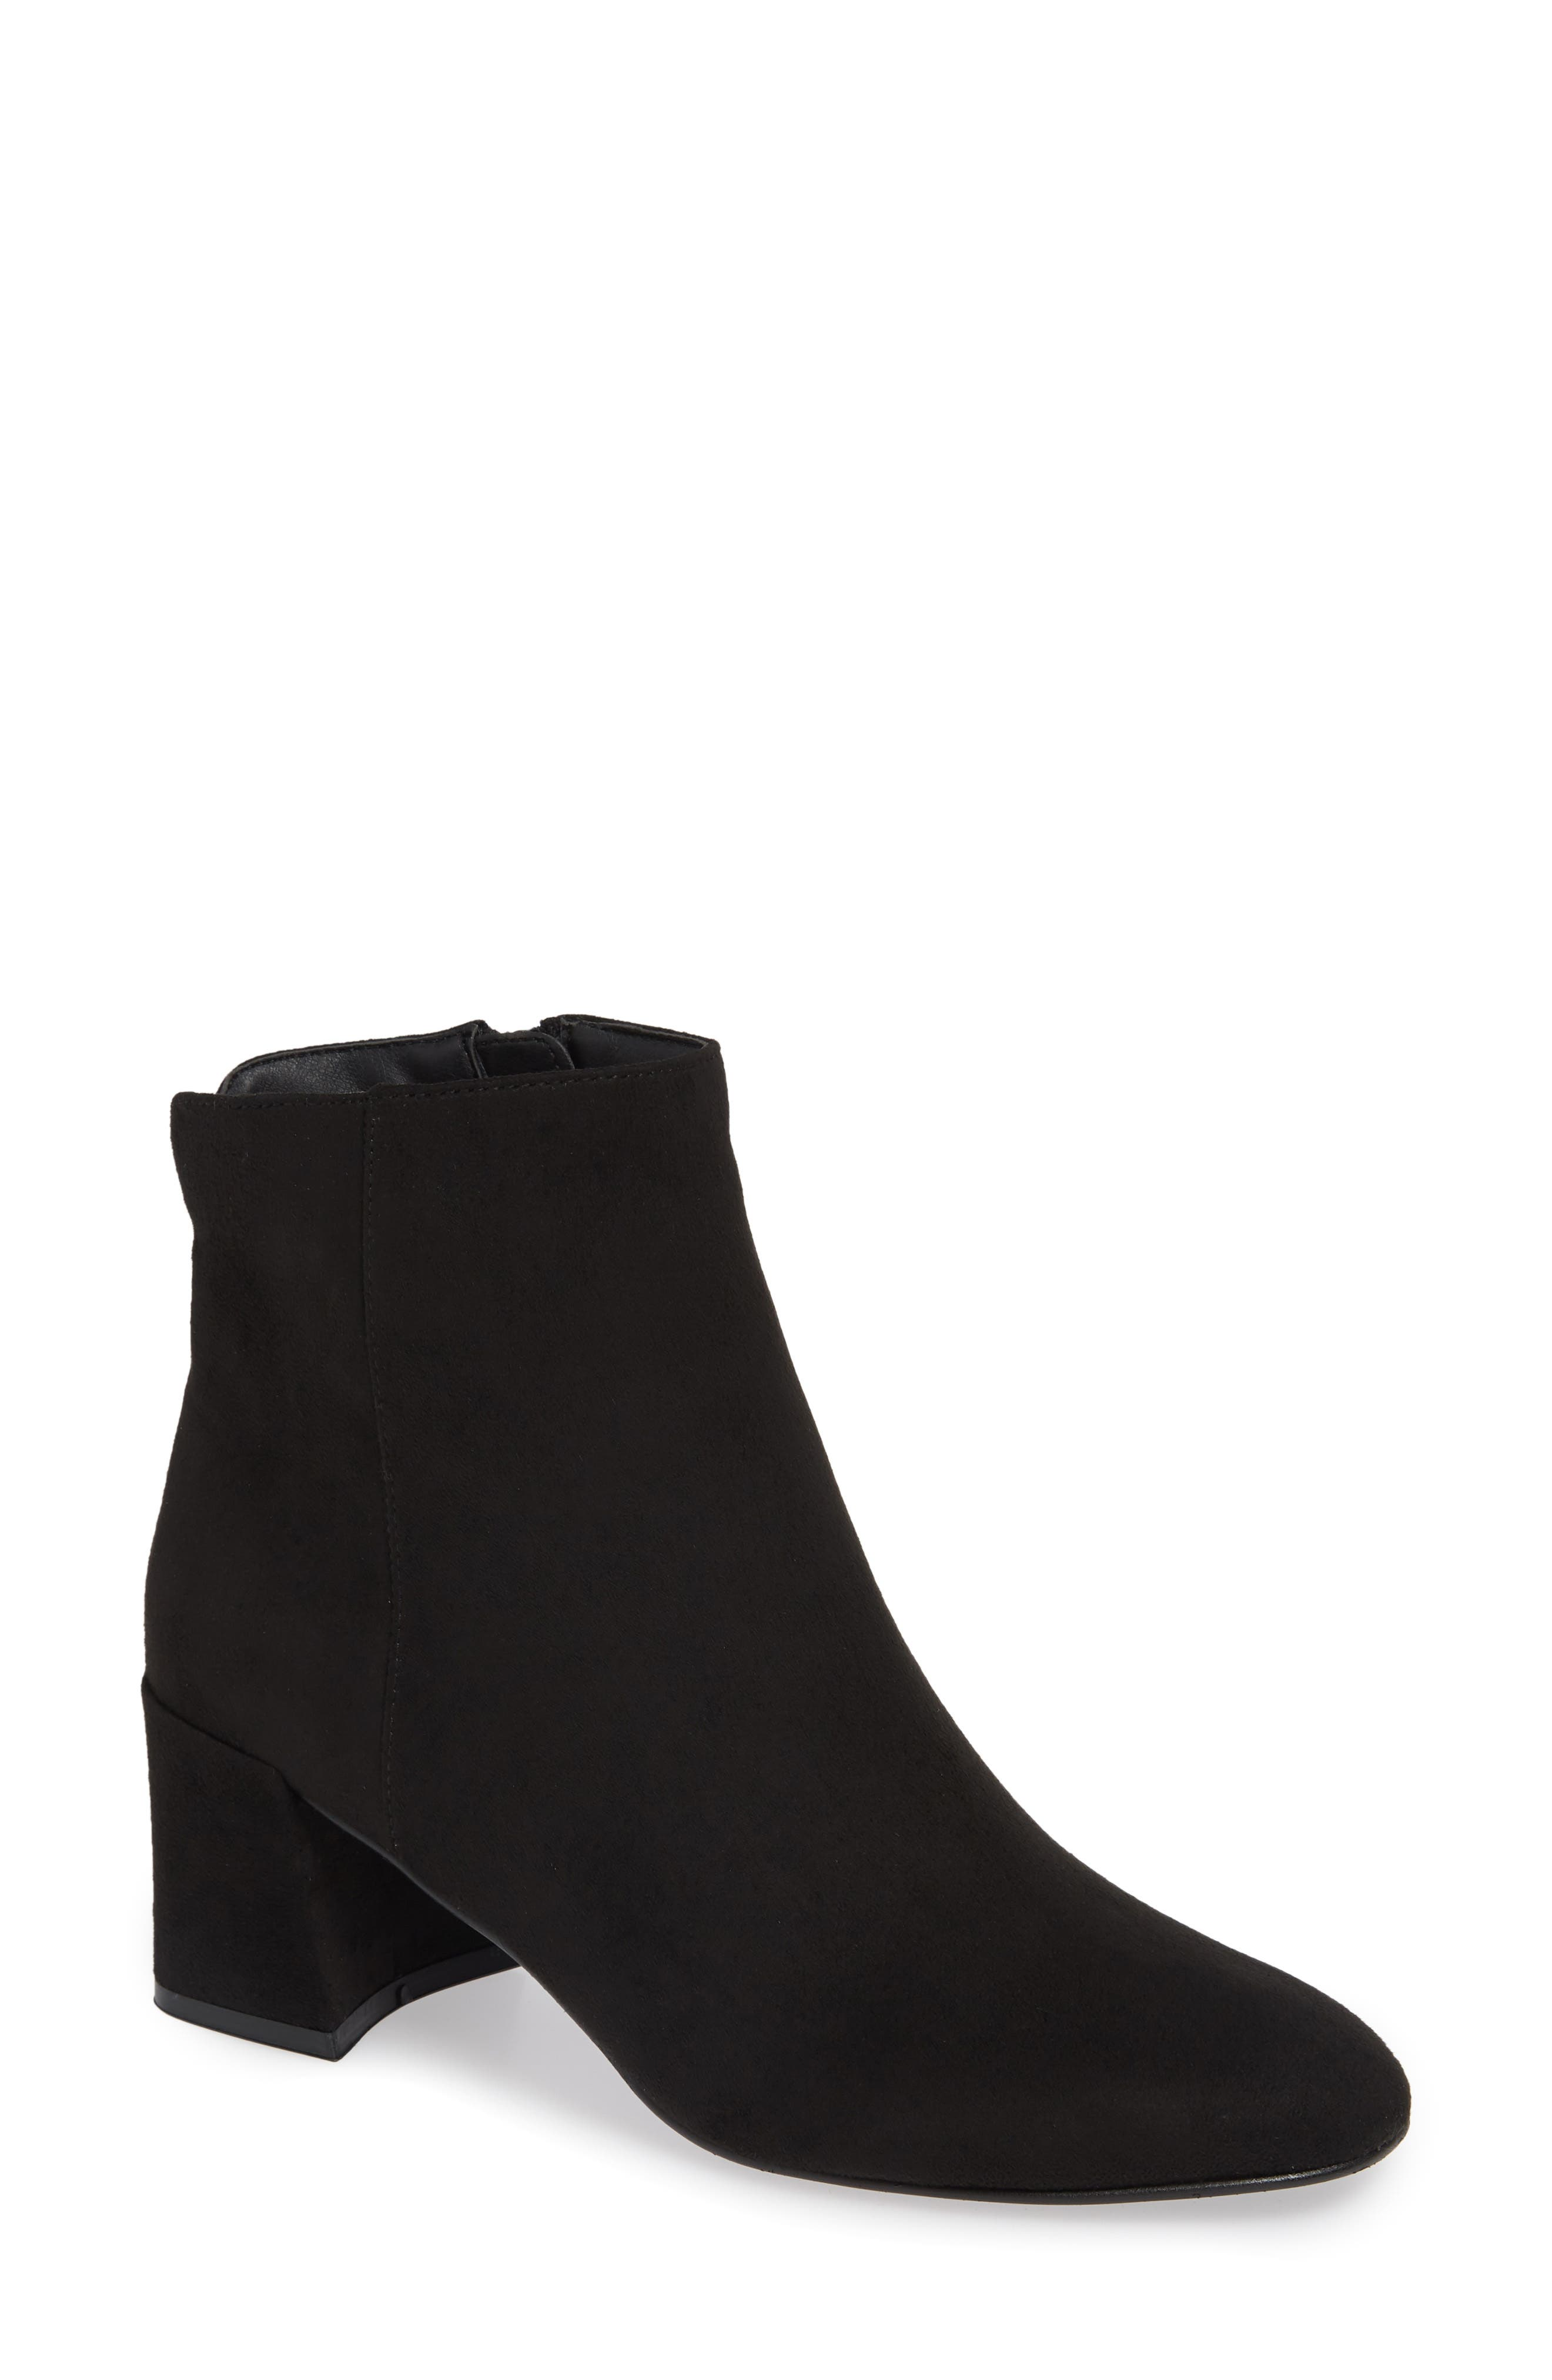 Chinese Laundry Daria Bootie, Black